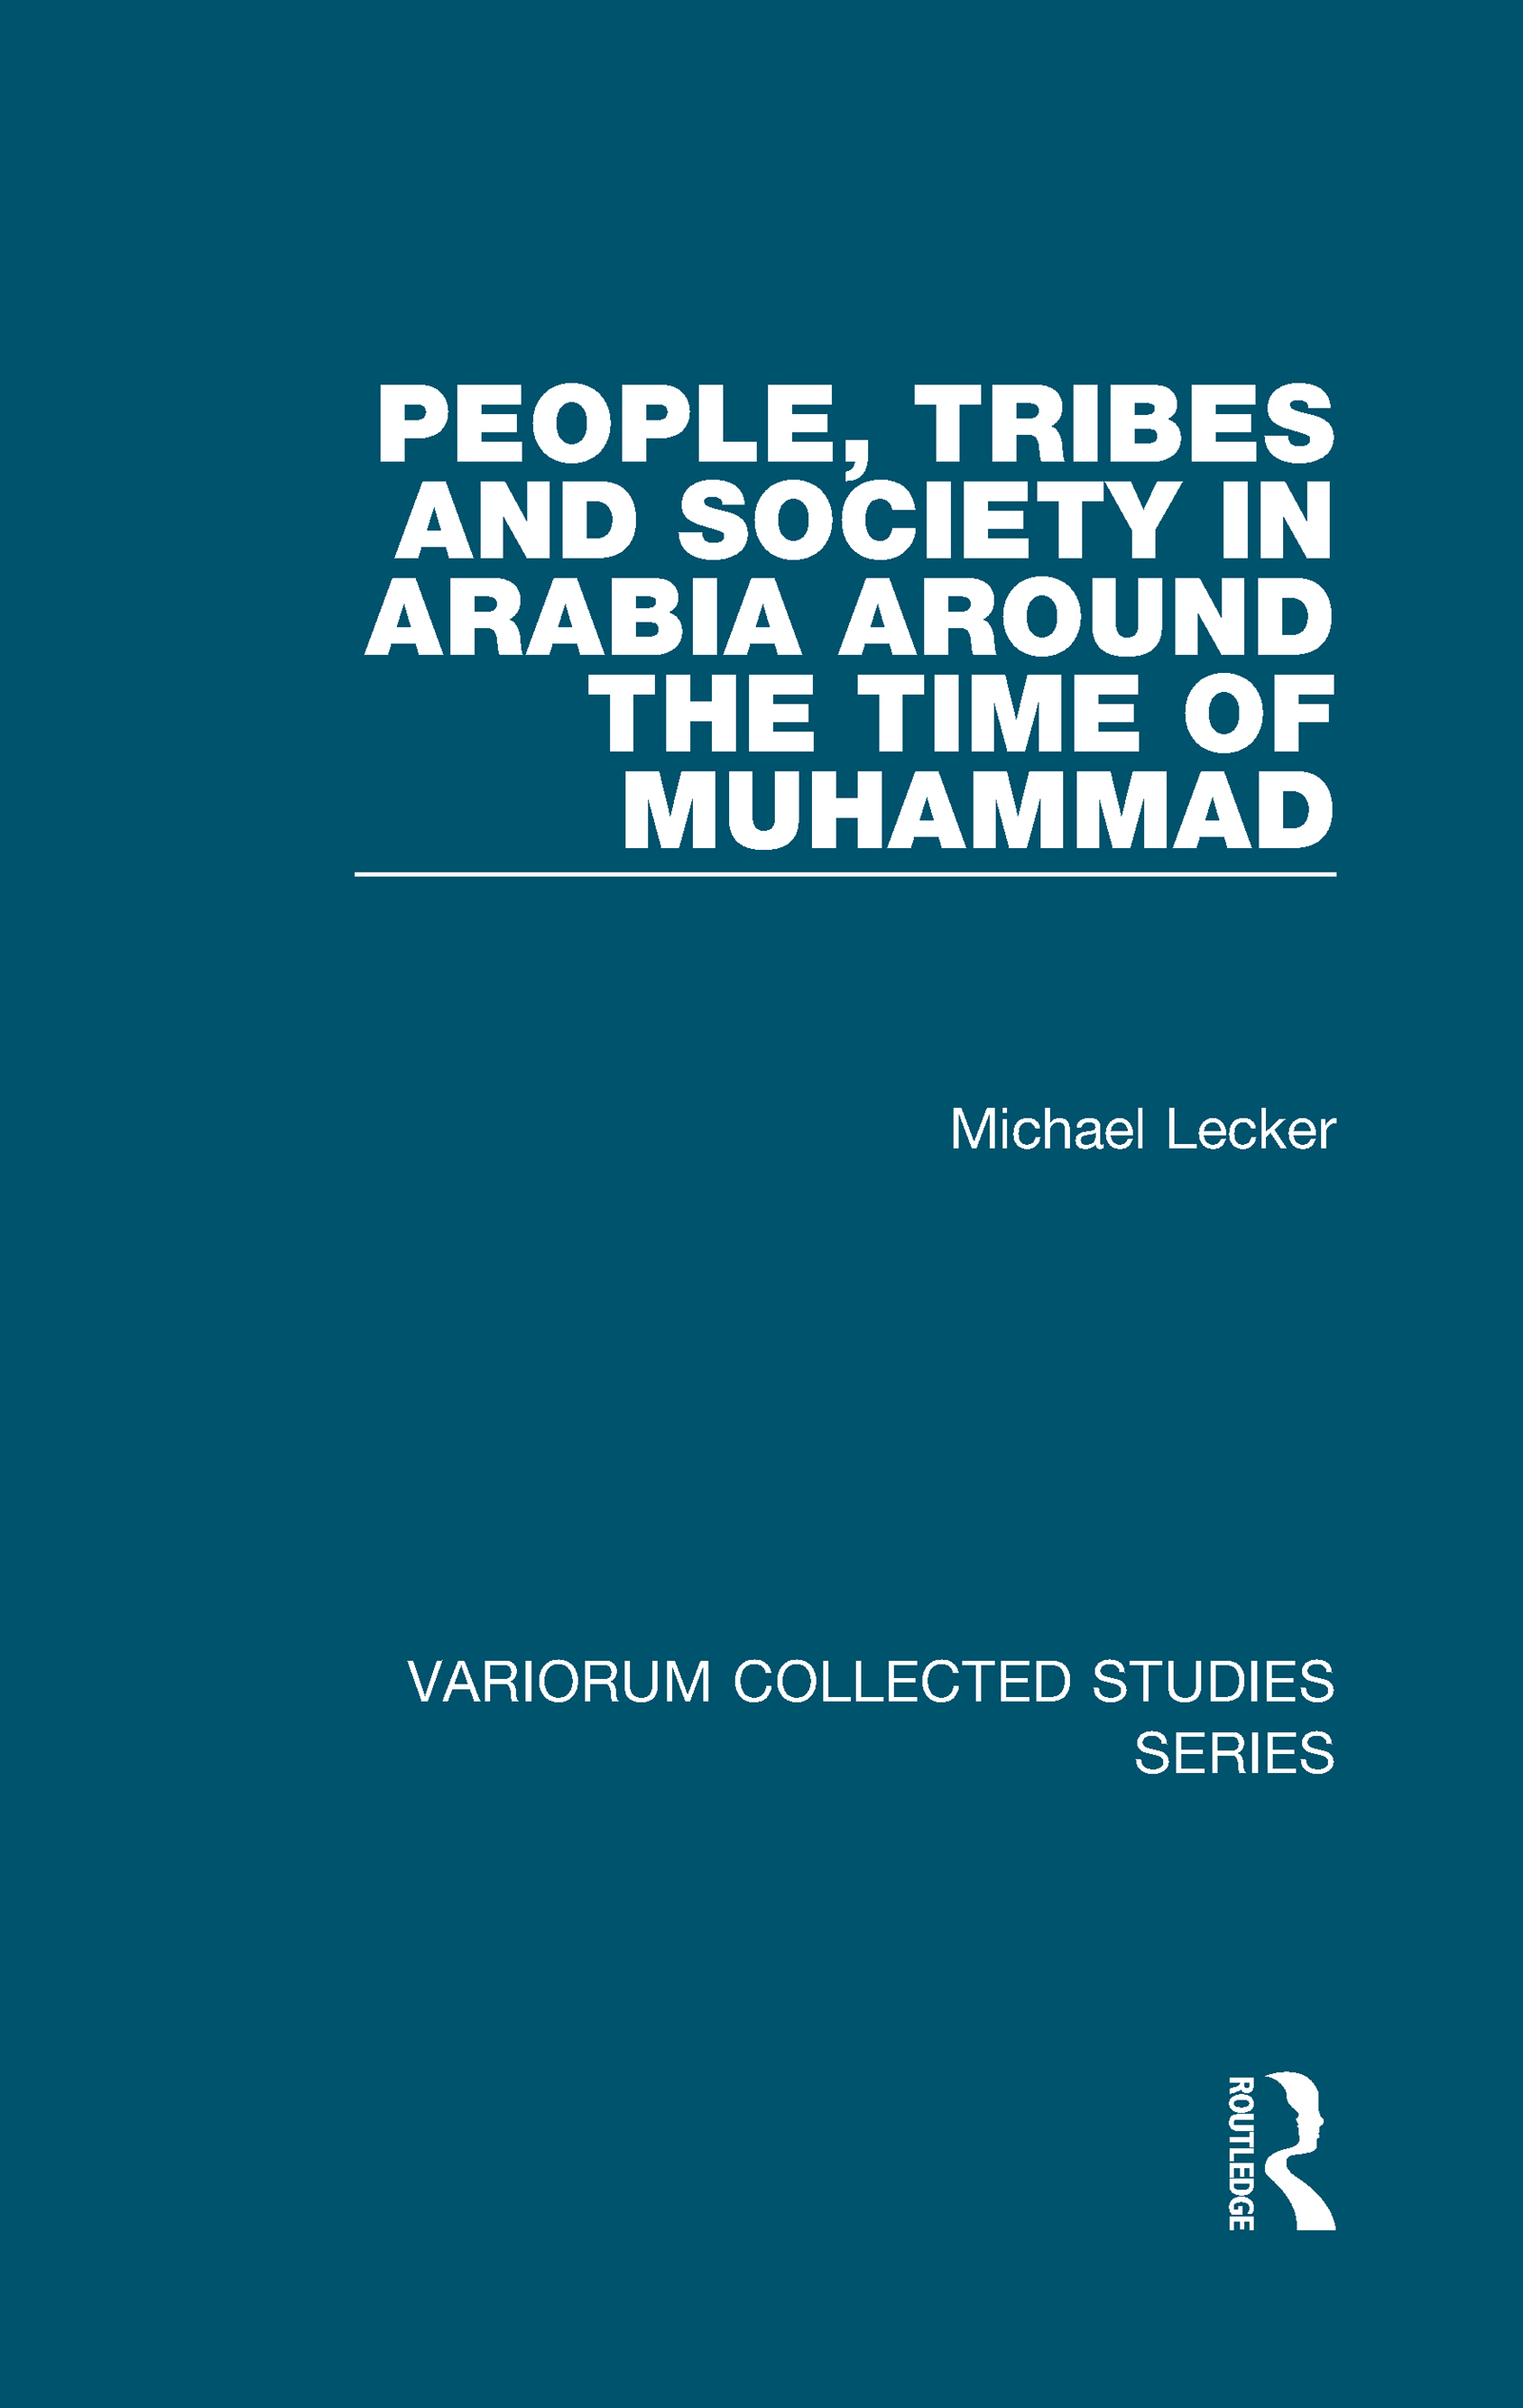 People, Tribes and Society in Arabia Around the Time of Muhammad